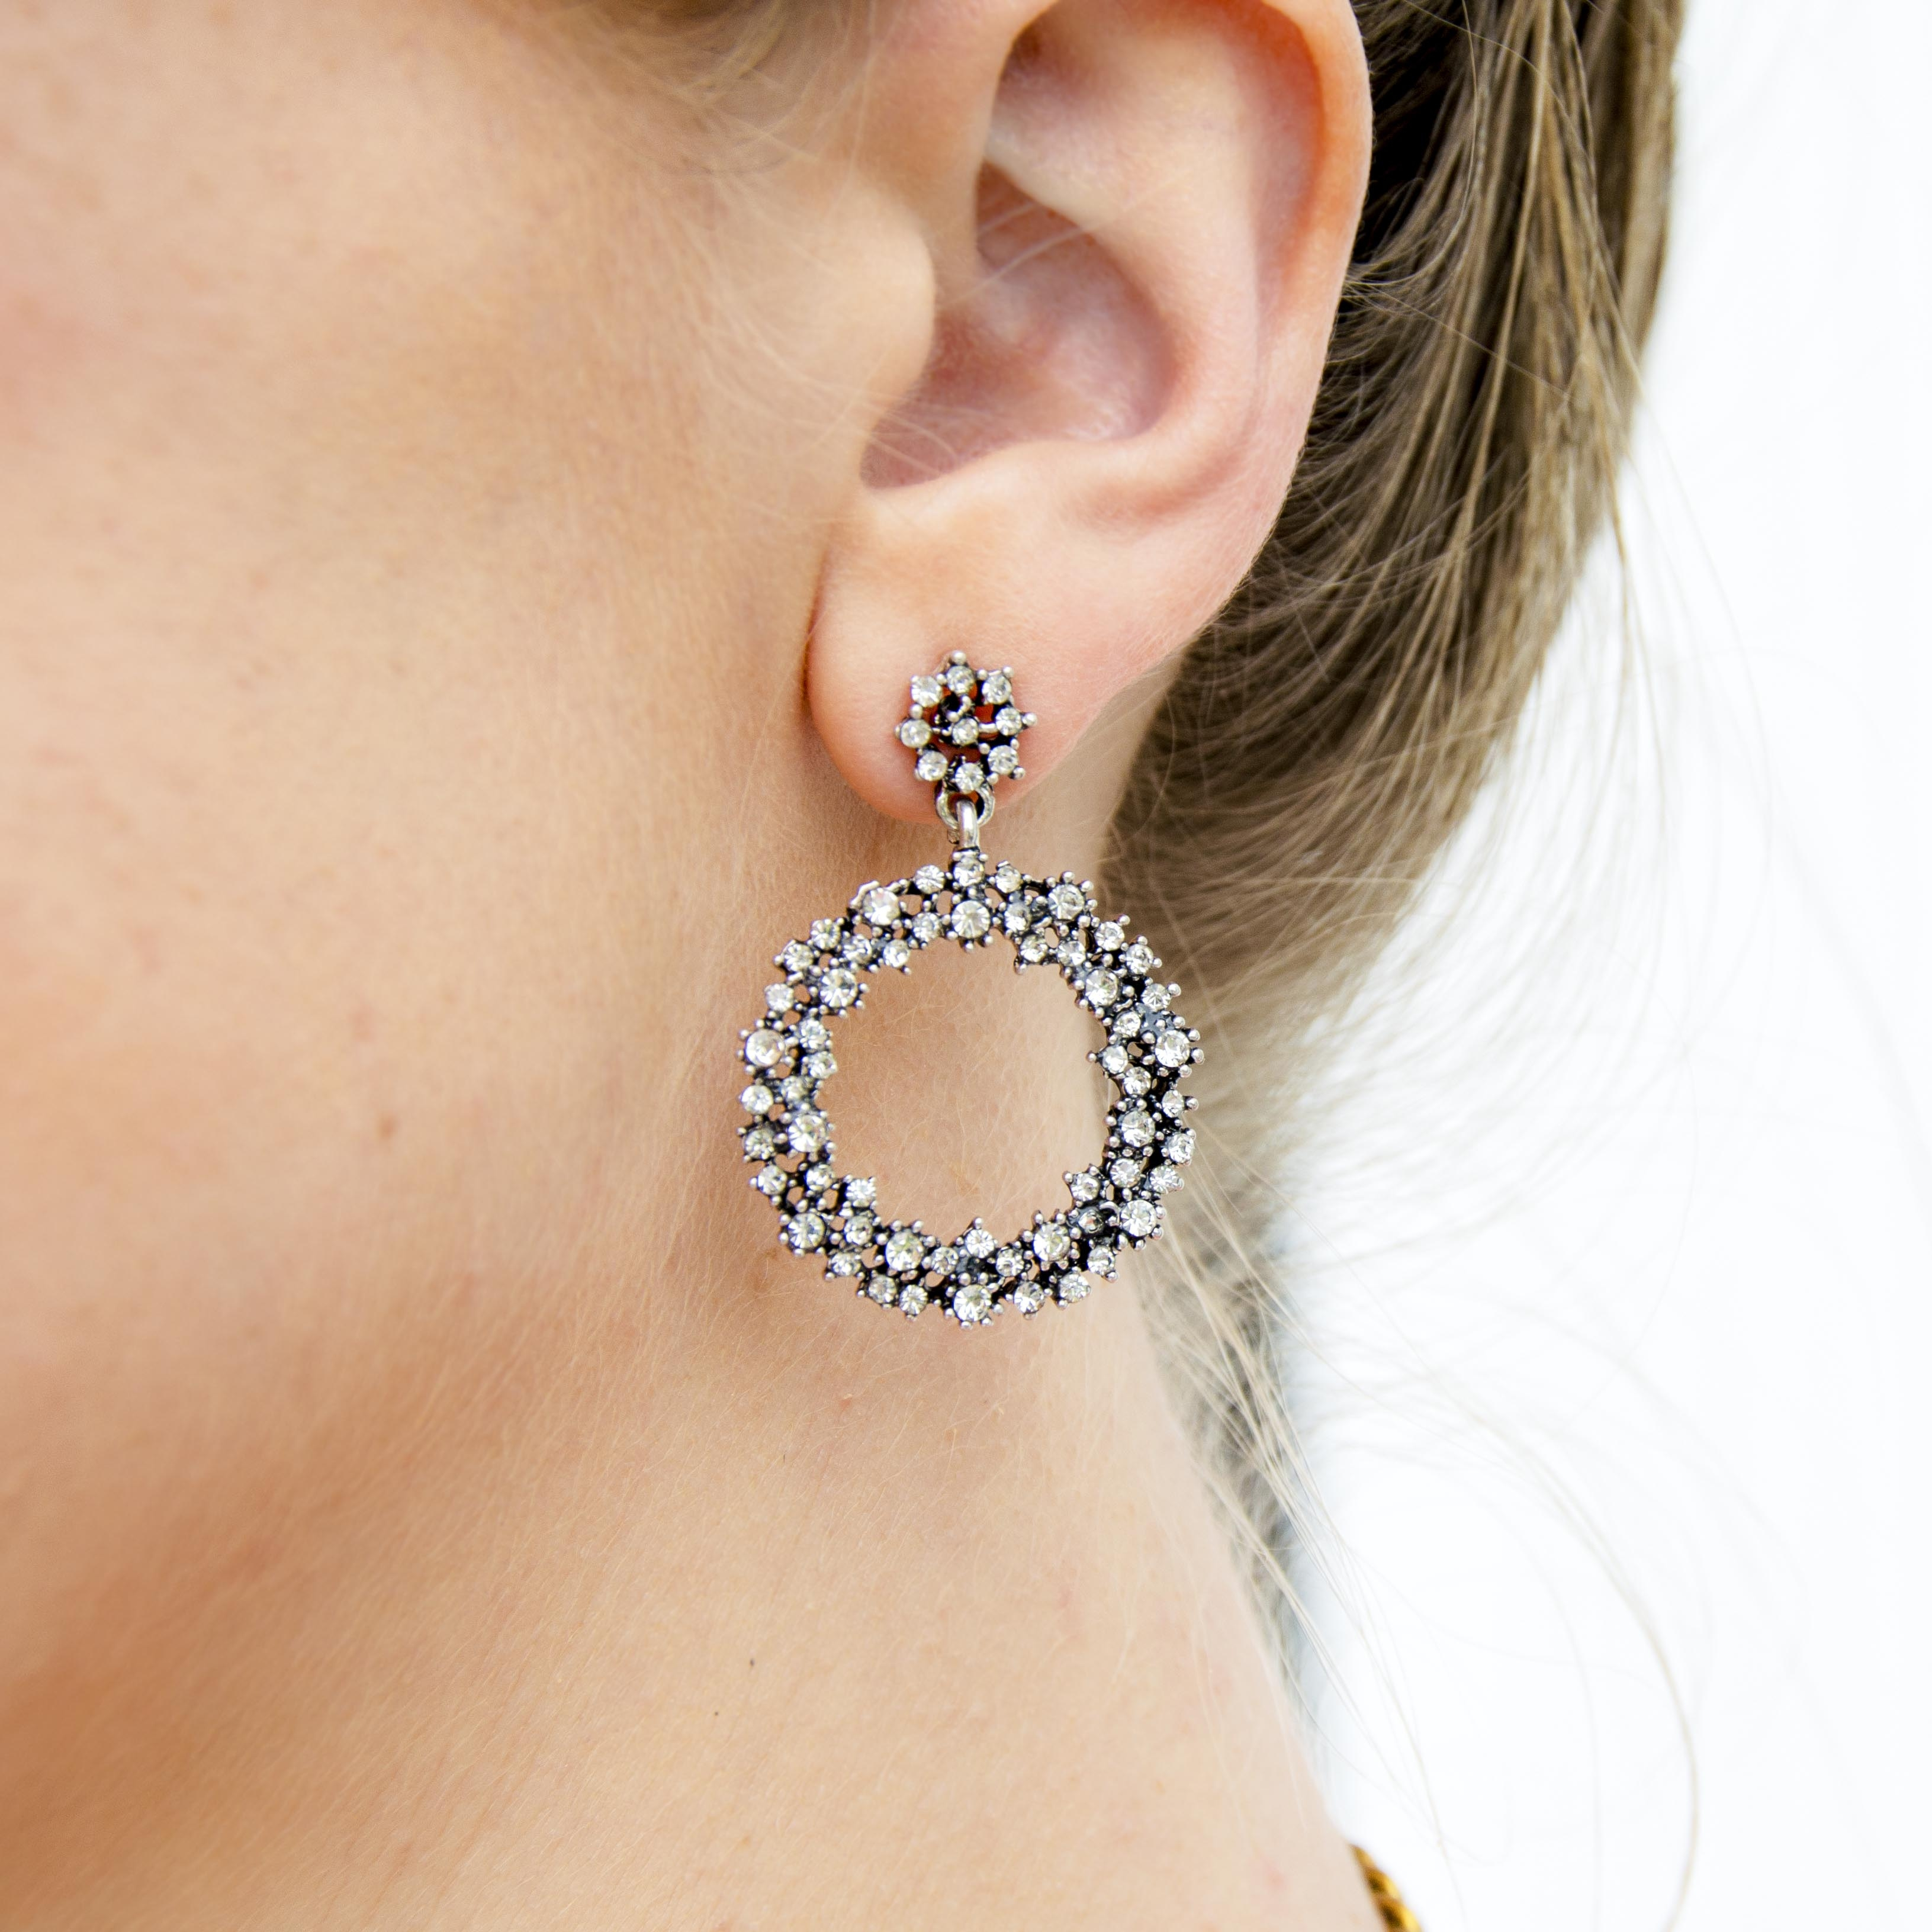 CLICK TO SHOP: The Duchess Earrings